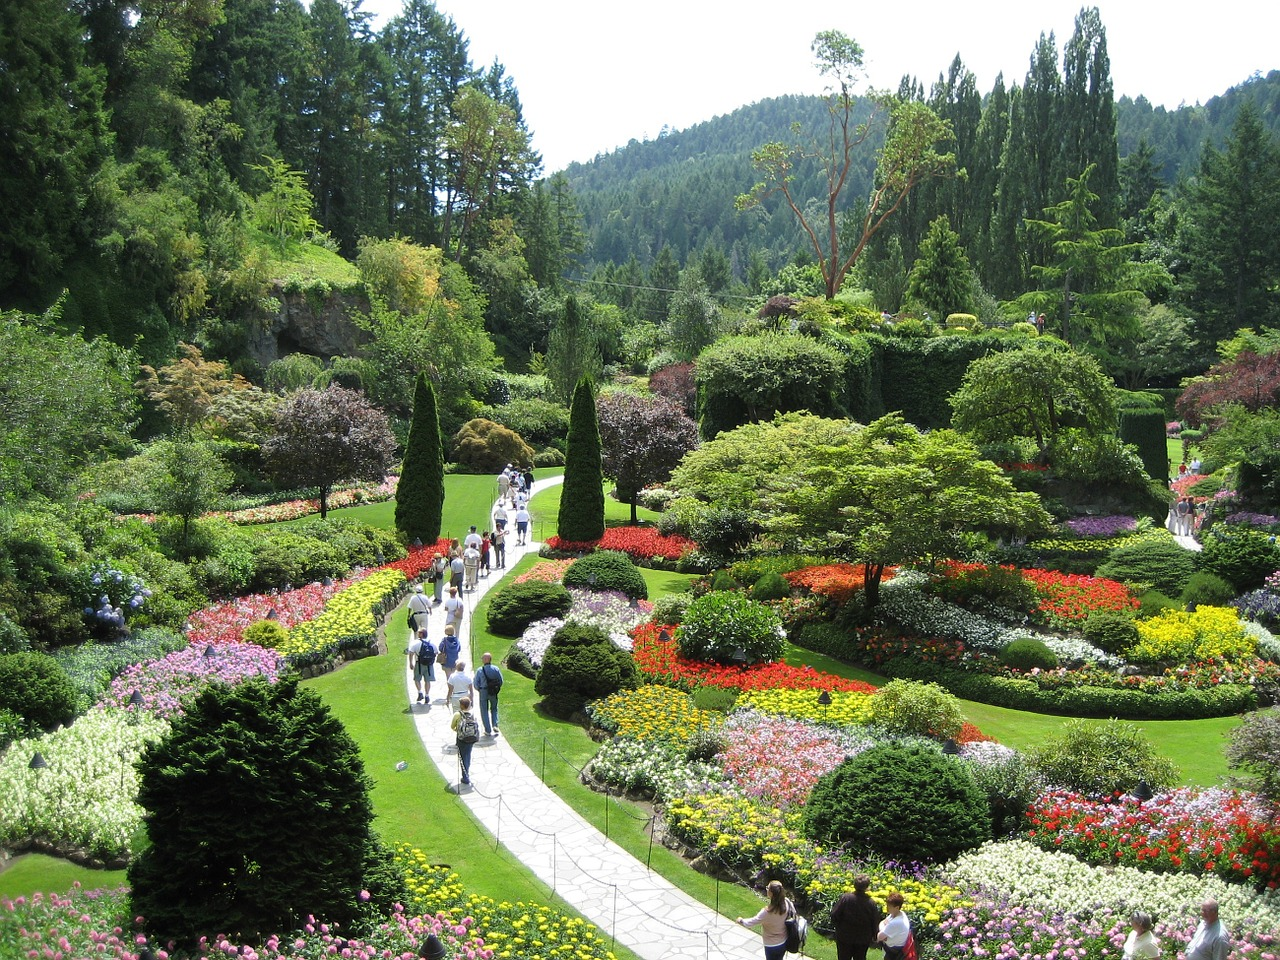 Butchart Gardens - Incredible Routes for Family Road Trips in Canada on a Budget